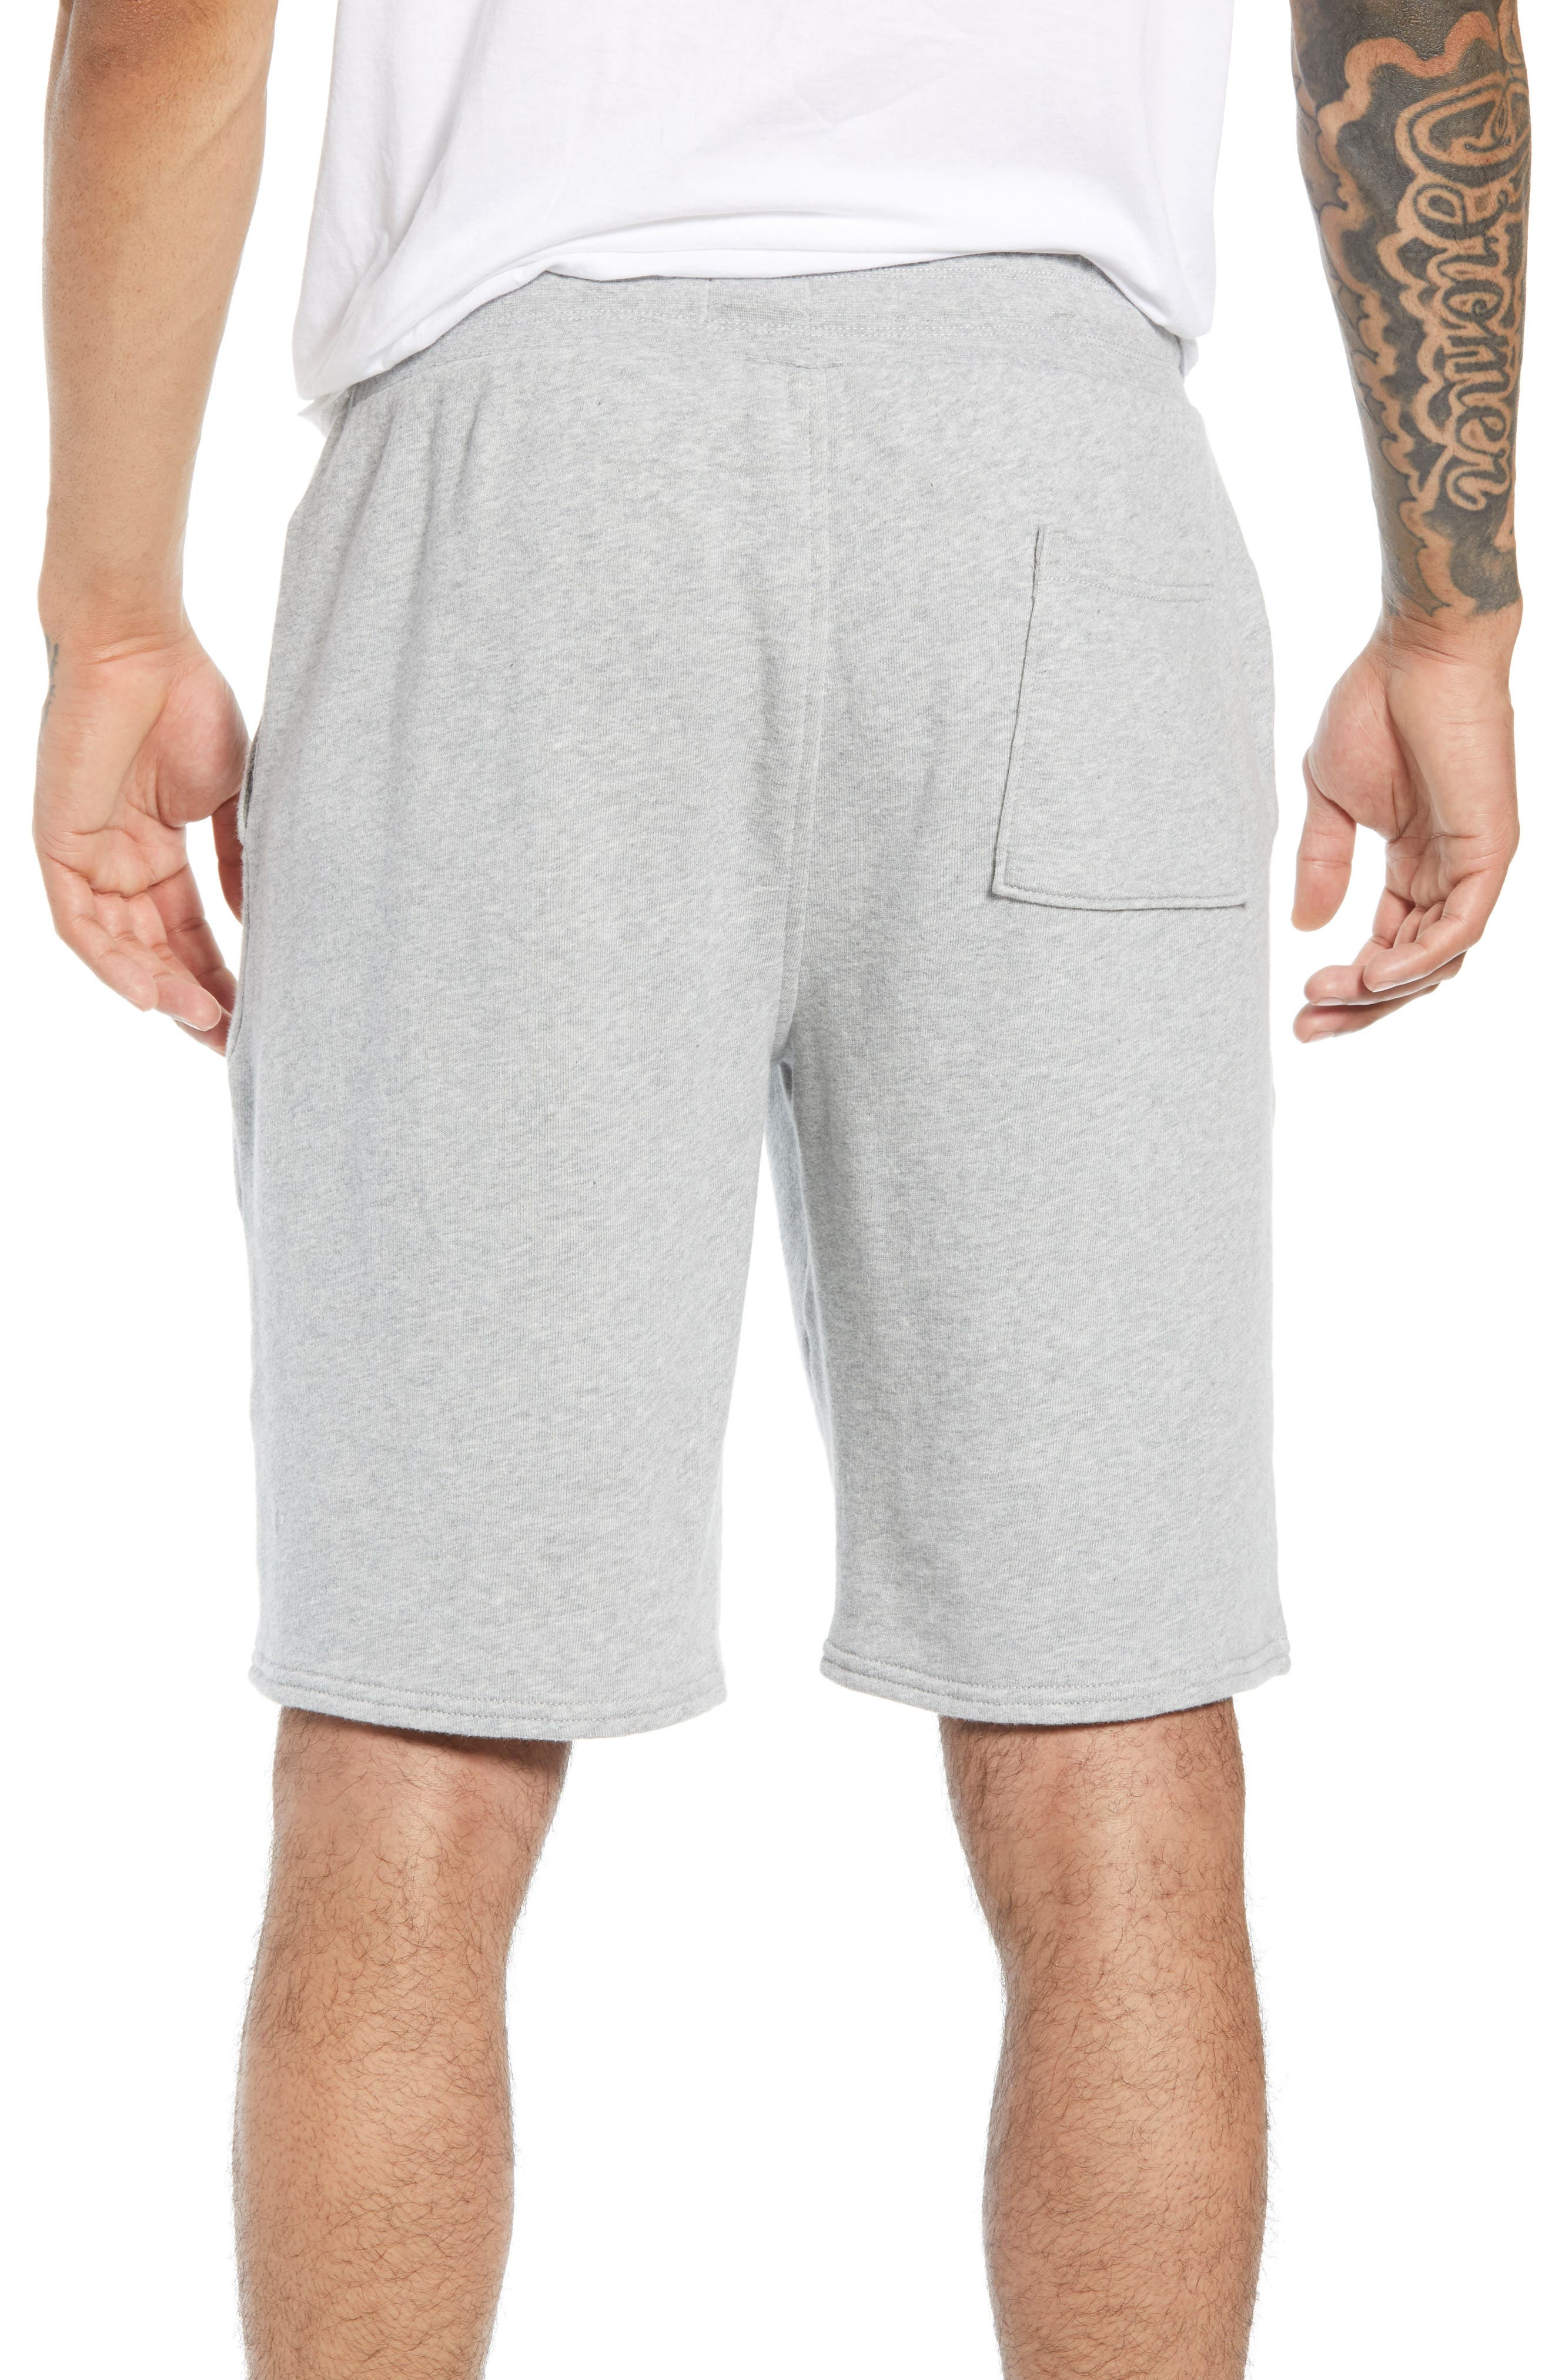 THE RAIL, Heathered Athletic Shorts, Alternate thumbnail 2, color, 050